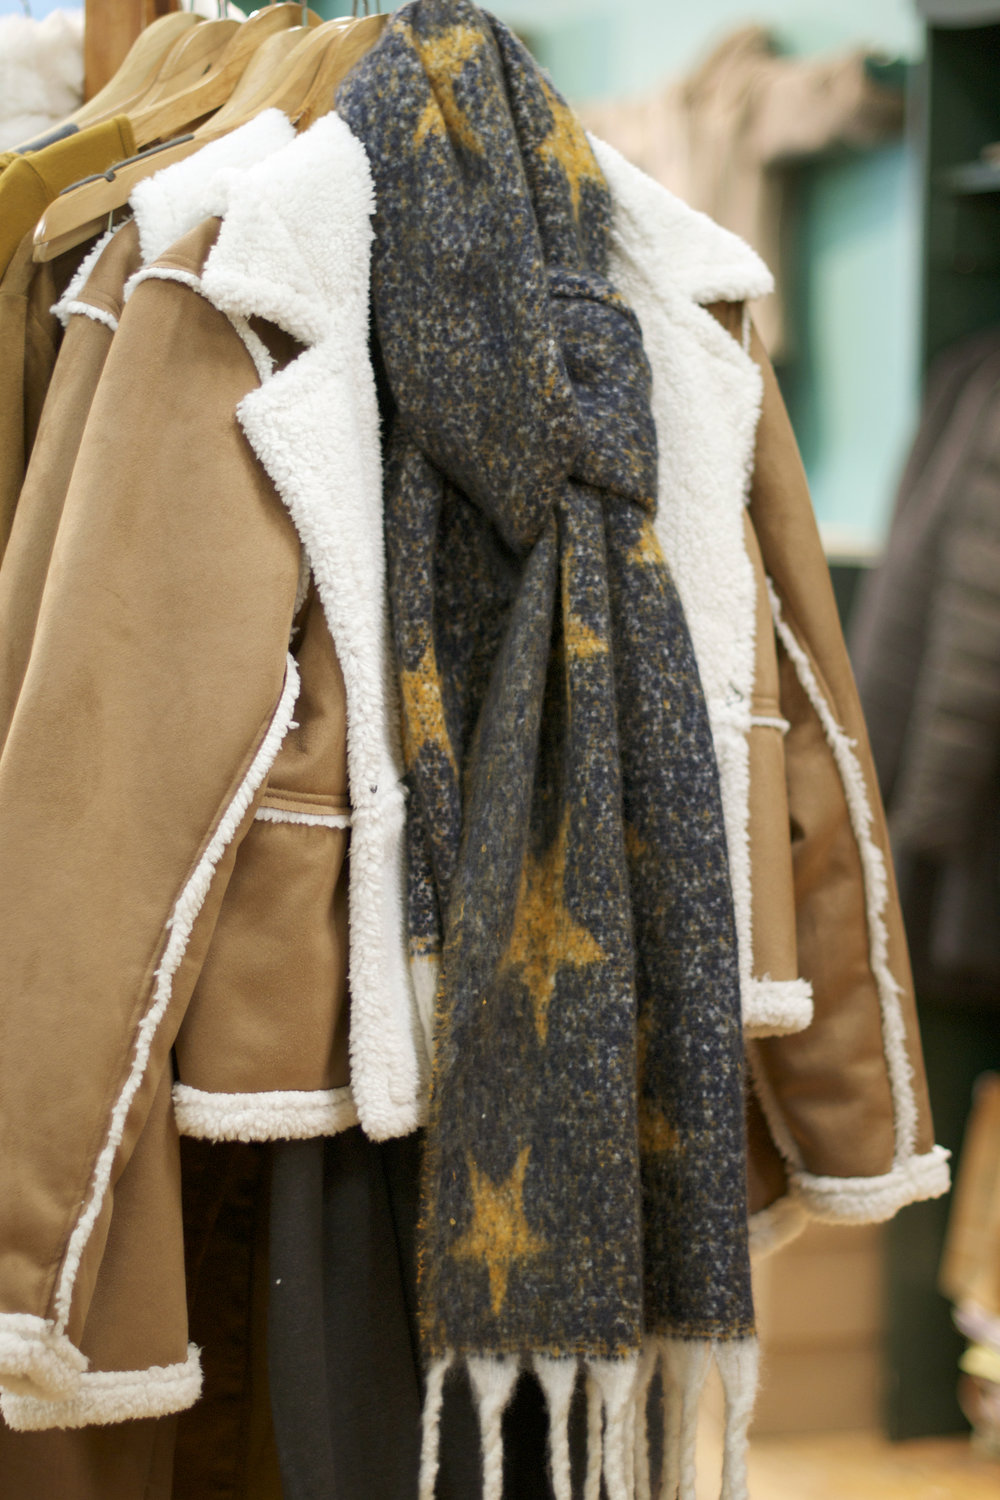 shearling-jacket-and-star-scarf.jpg